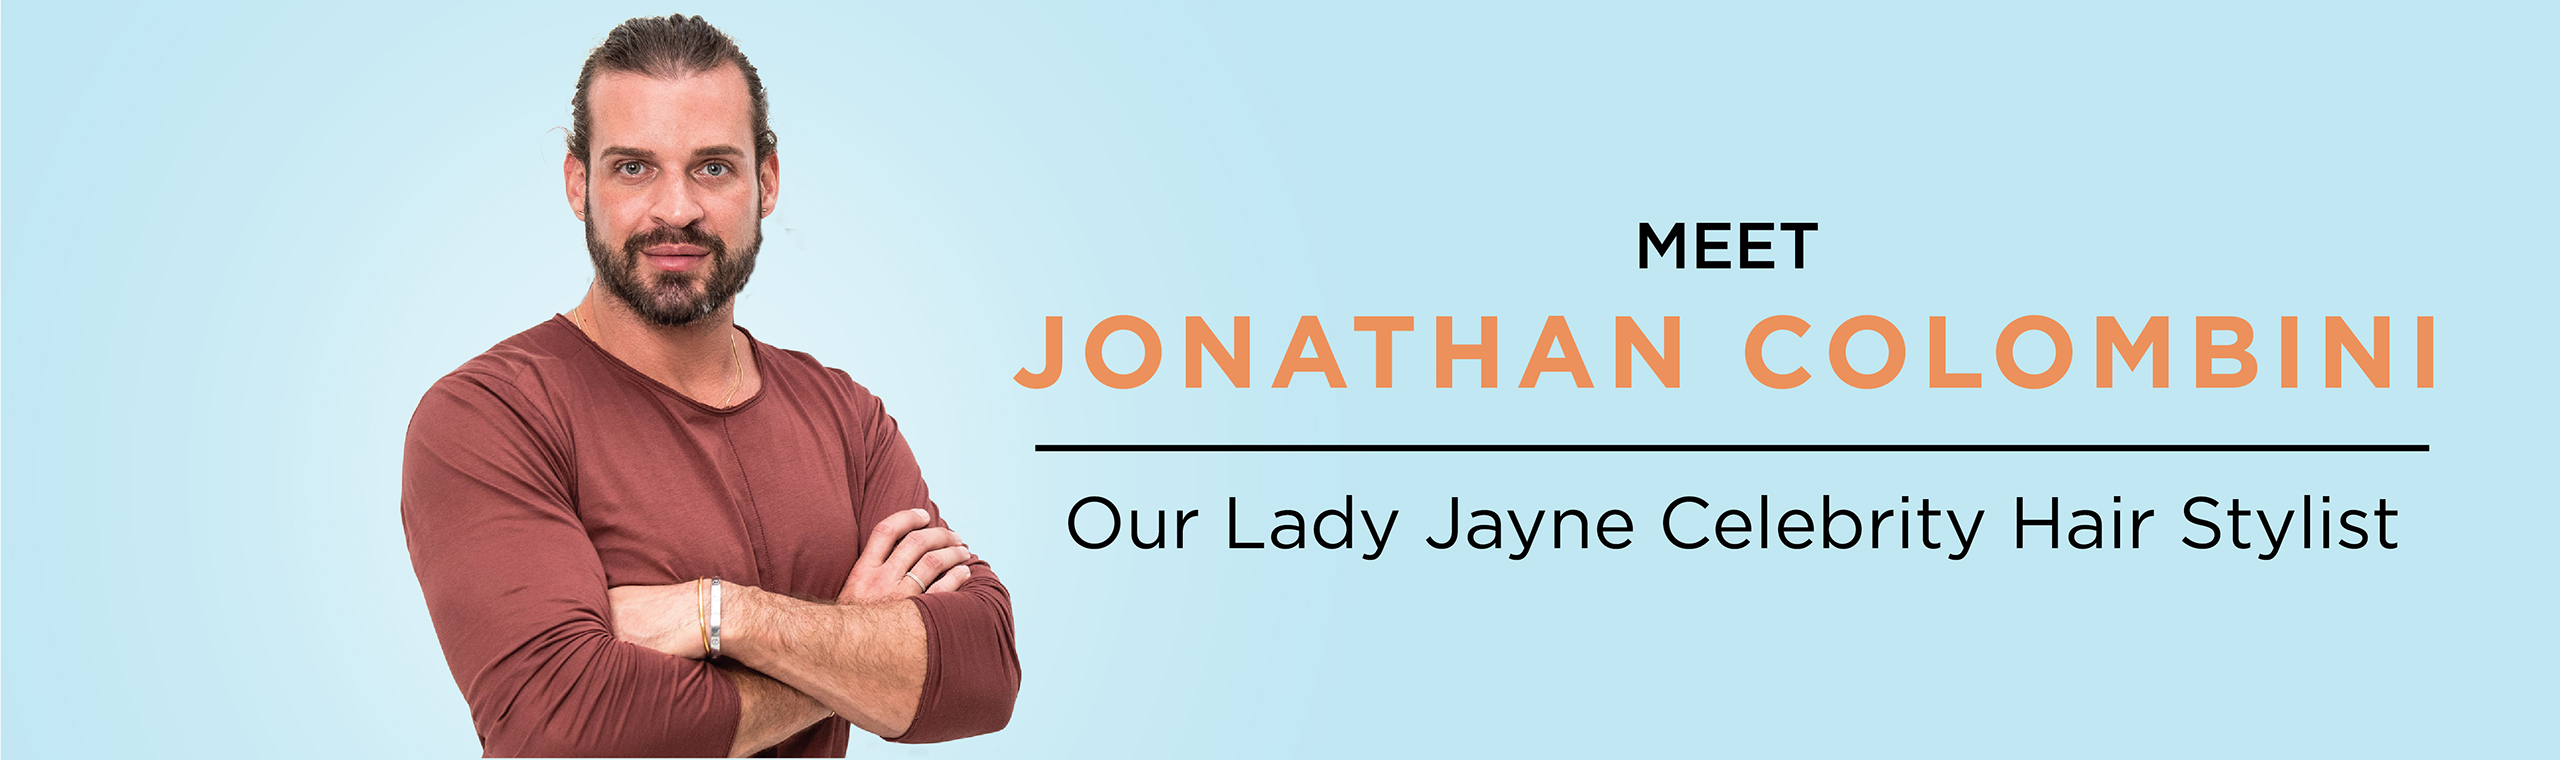 Meet Jonathan Colombini, our Lady Jayne Celebrity Hair Stylist